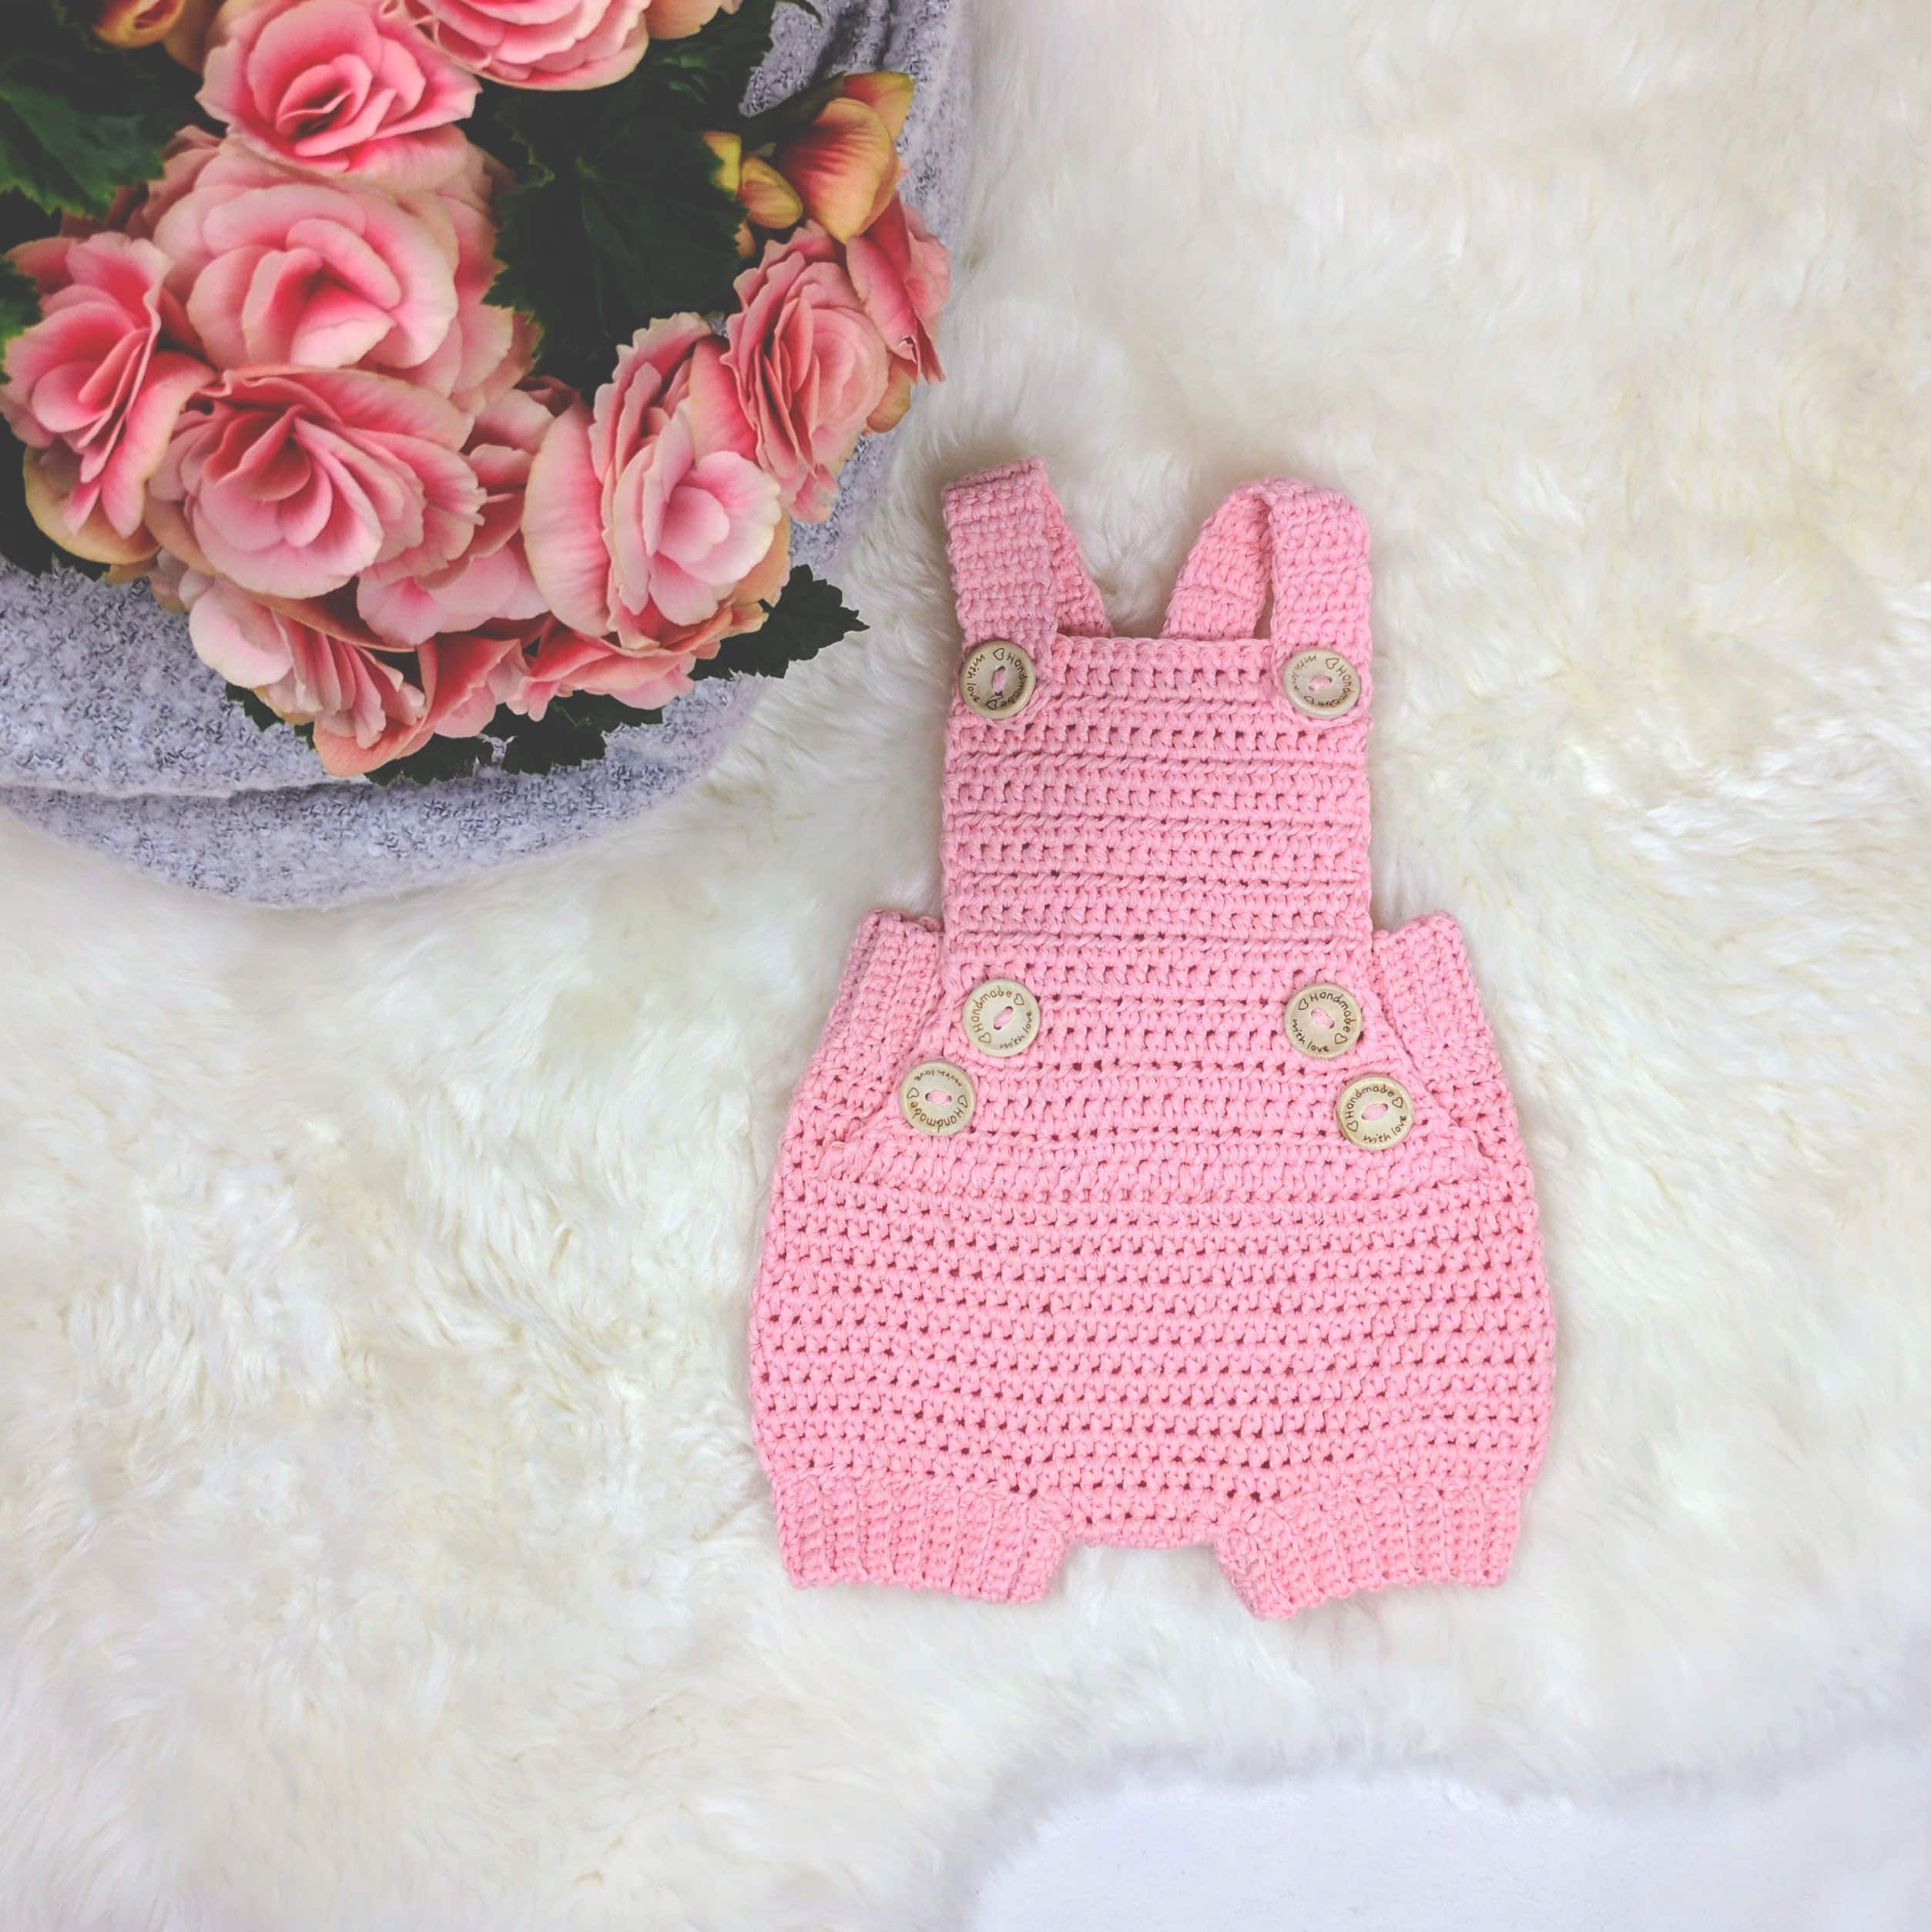 Croceht Baby Romper by Croby Patterns